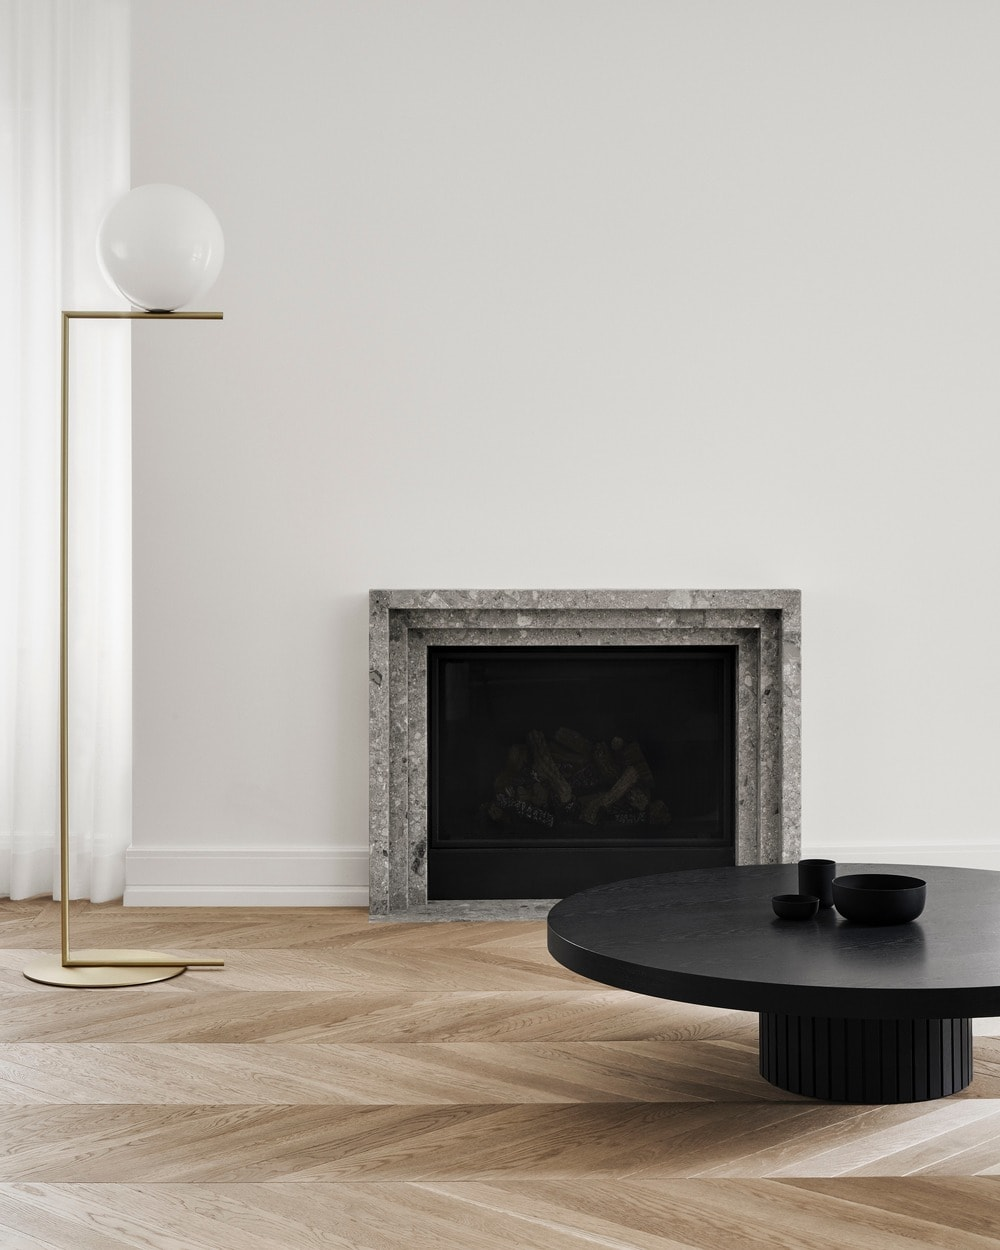 On the side of the fireplace is a standing lamp with a unique and stylish design.